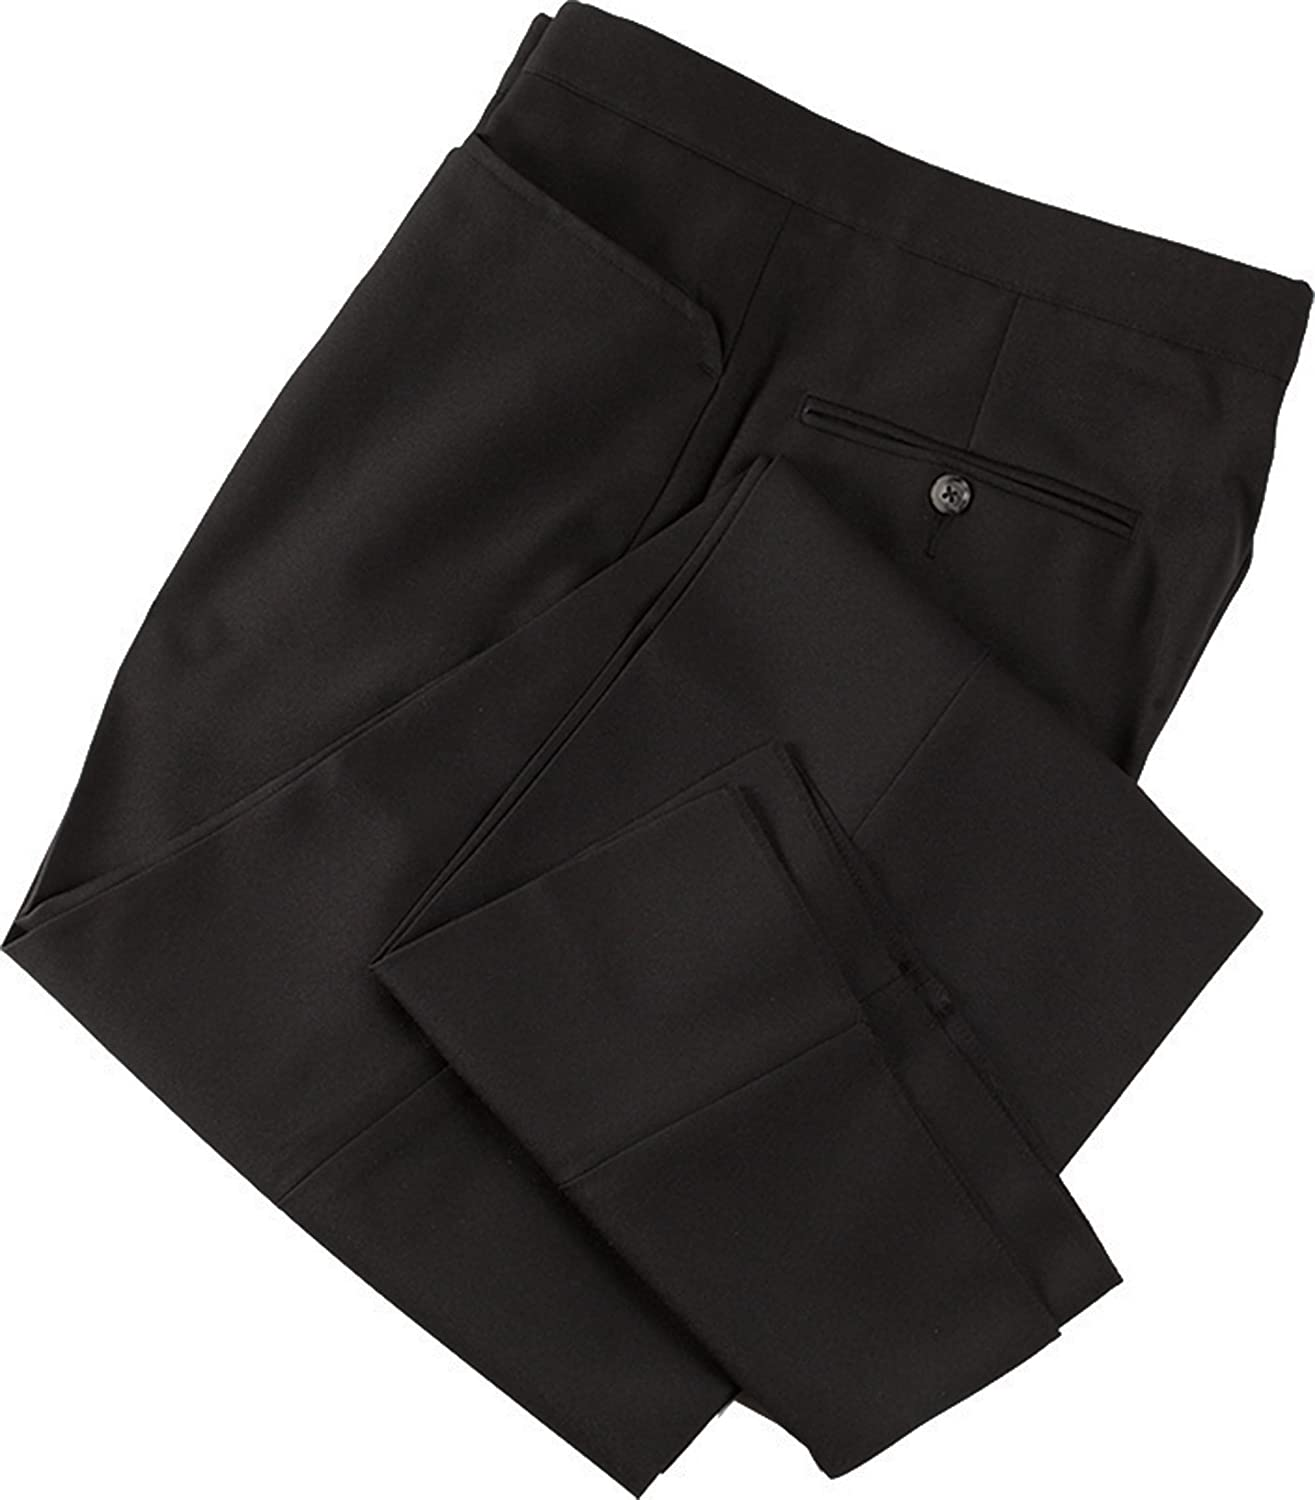 Smitty Referee with Western Cut Belt half Largeloops Pant Pockets Sale price and